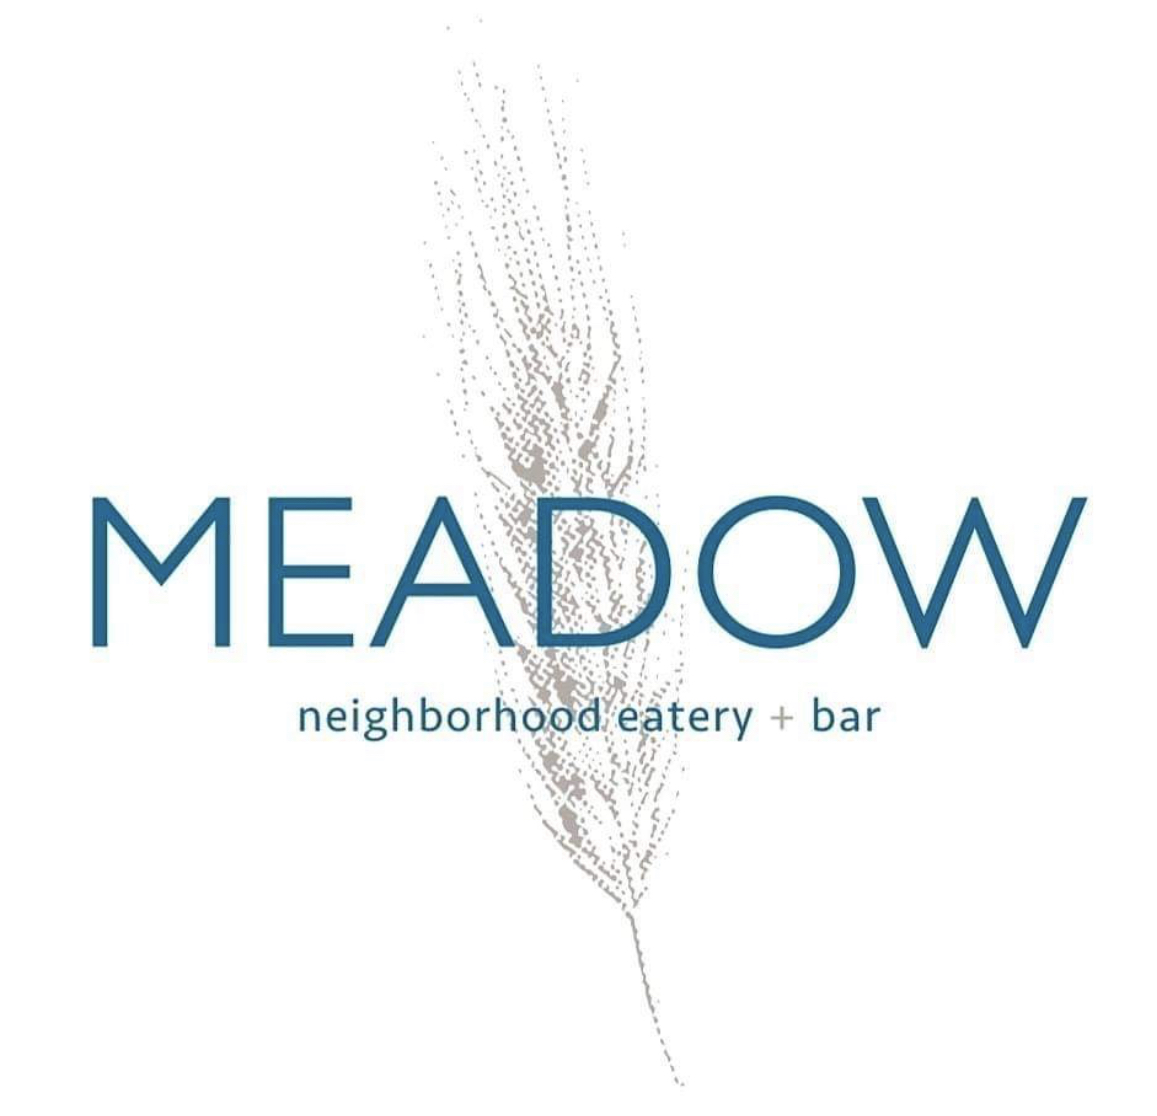 Meadow Neighborhood Eatery + Bar , Brunch & Dinner  555 W Bitters Rd #110, San Antonio, 78216  P 210-481-4214    Meadow's Dinner Menu    (Available Tue-Sat after 5pm)     Make a Reservation on OpenTable